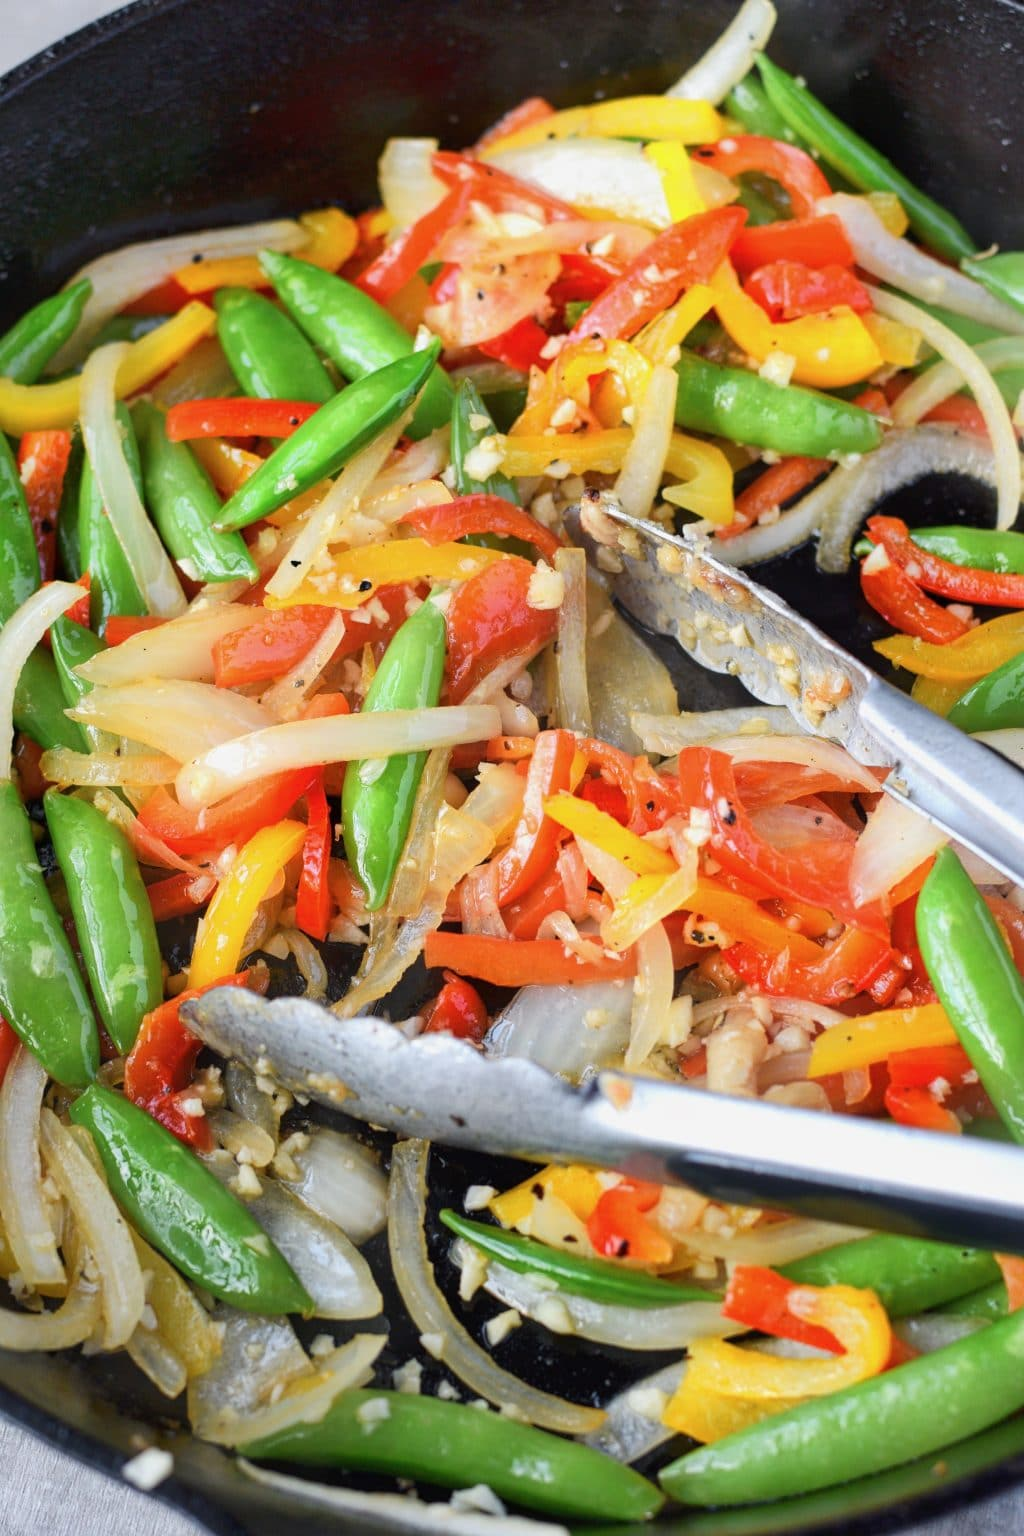 Sweet and Spicy chicken stir fry veggies